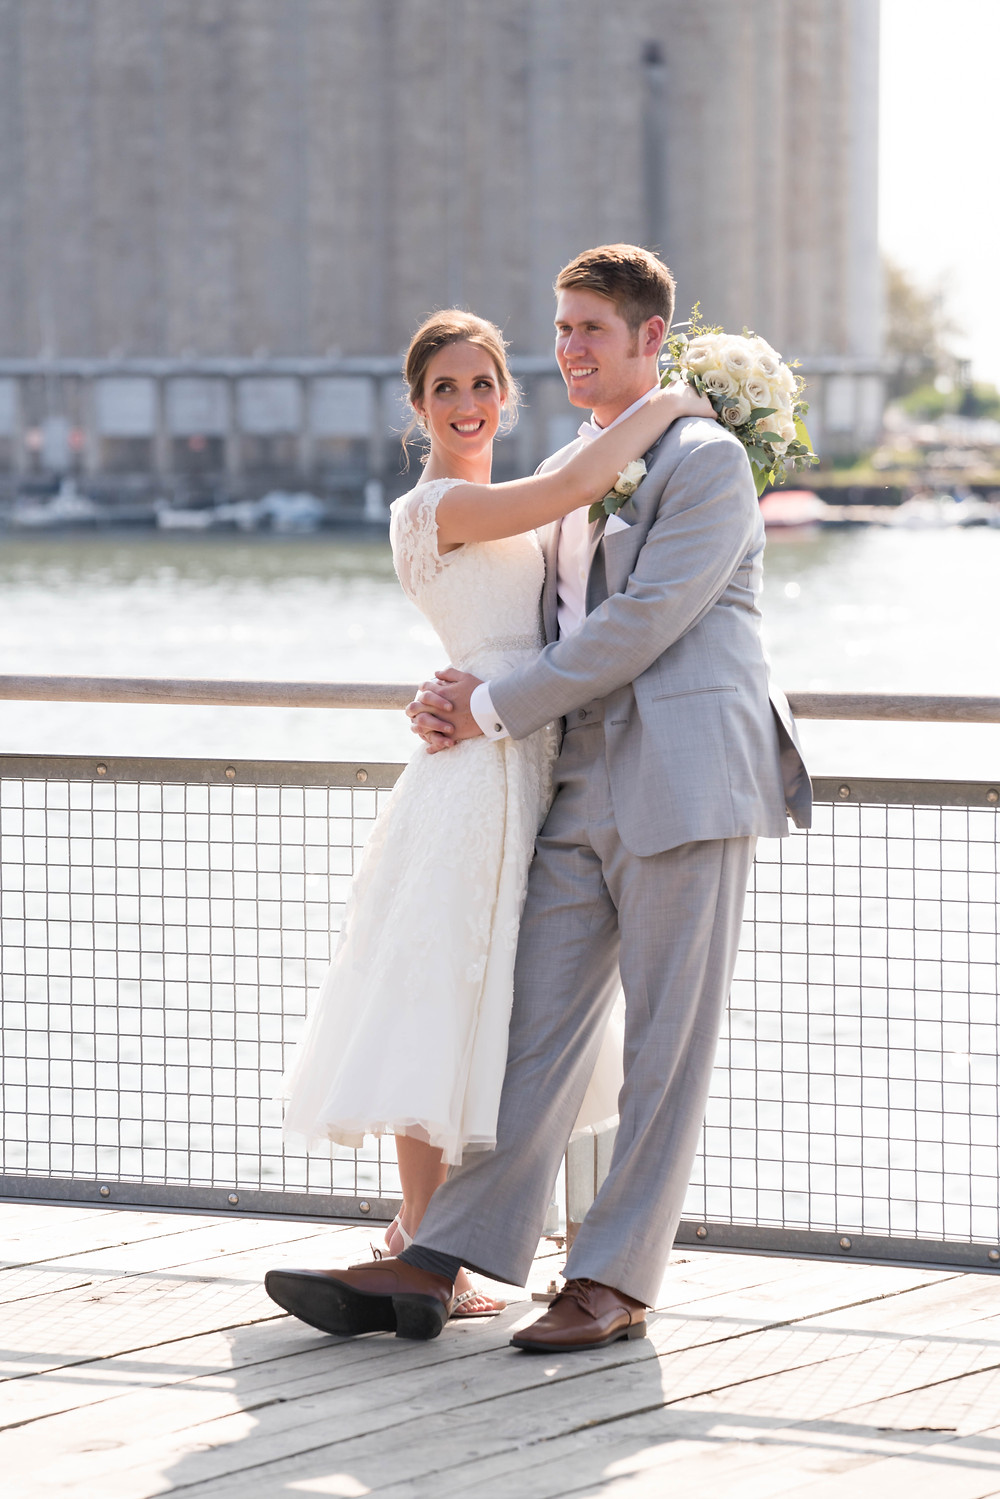 Buffalo Canalside bride and groom wedding photo with silo summer outdoor venue